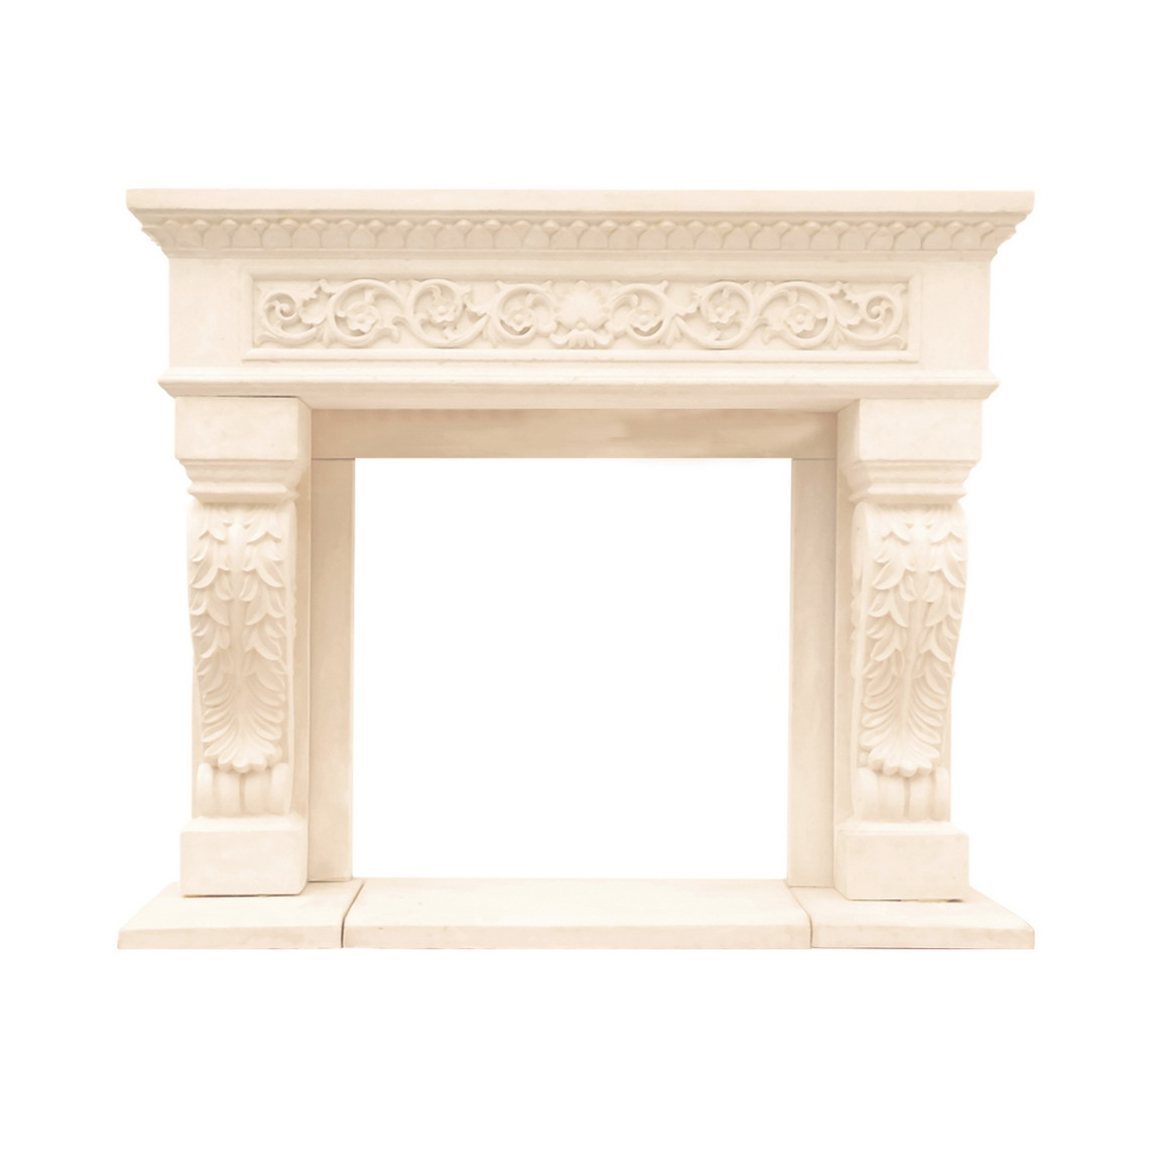 Best Lowes Fireplace Mantel for Warm Up Your Space Room Ideas: Mantels Home Depot | Lowes Fireplace Mantel | Home Depot Fireplace Mantels Kits